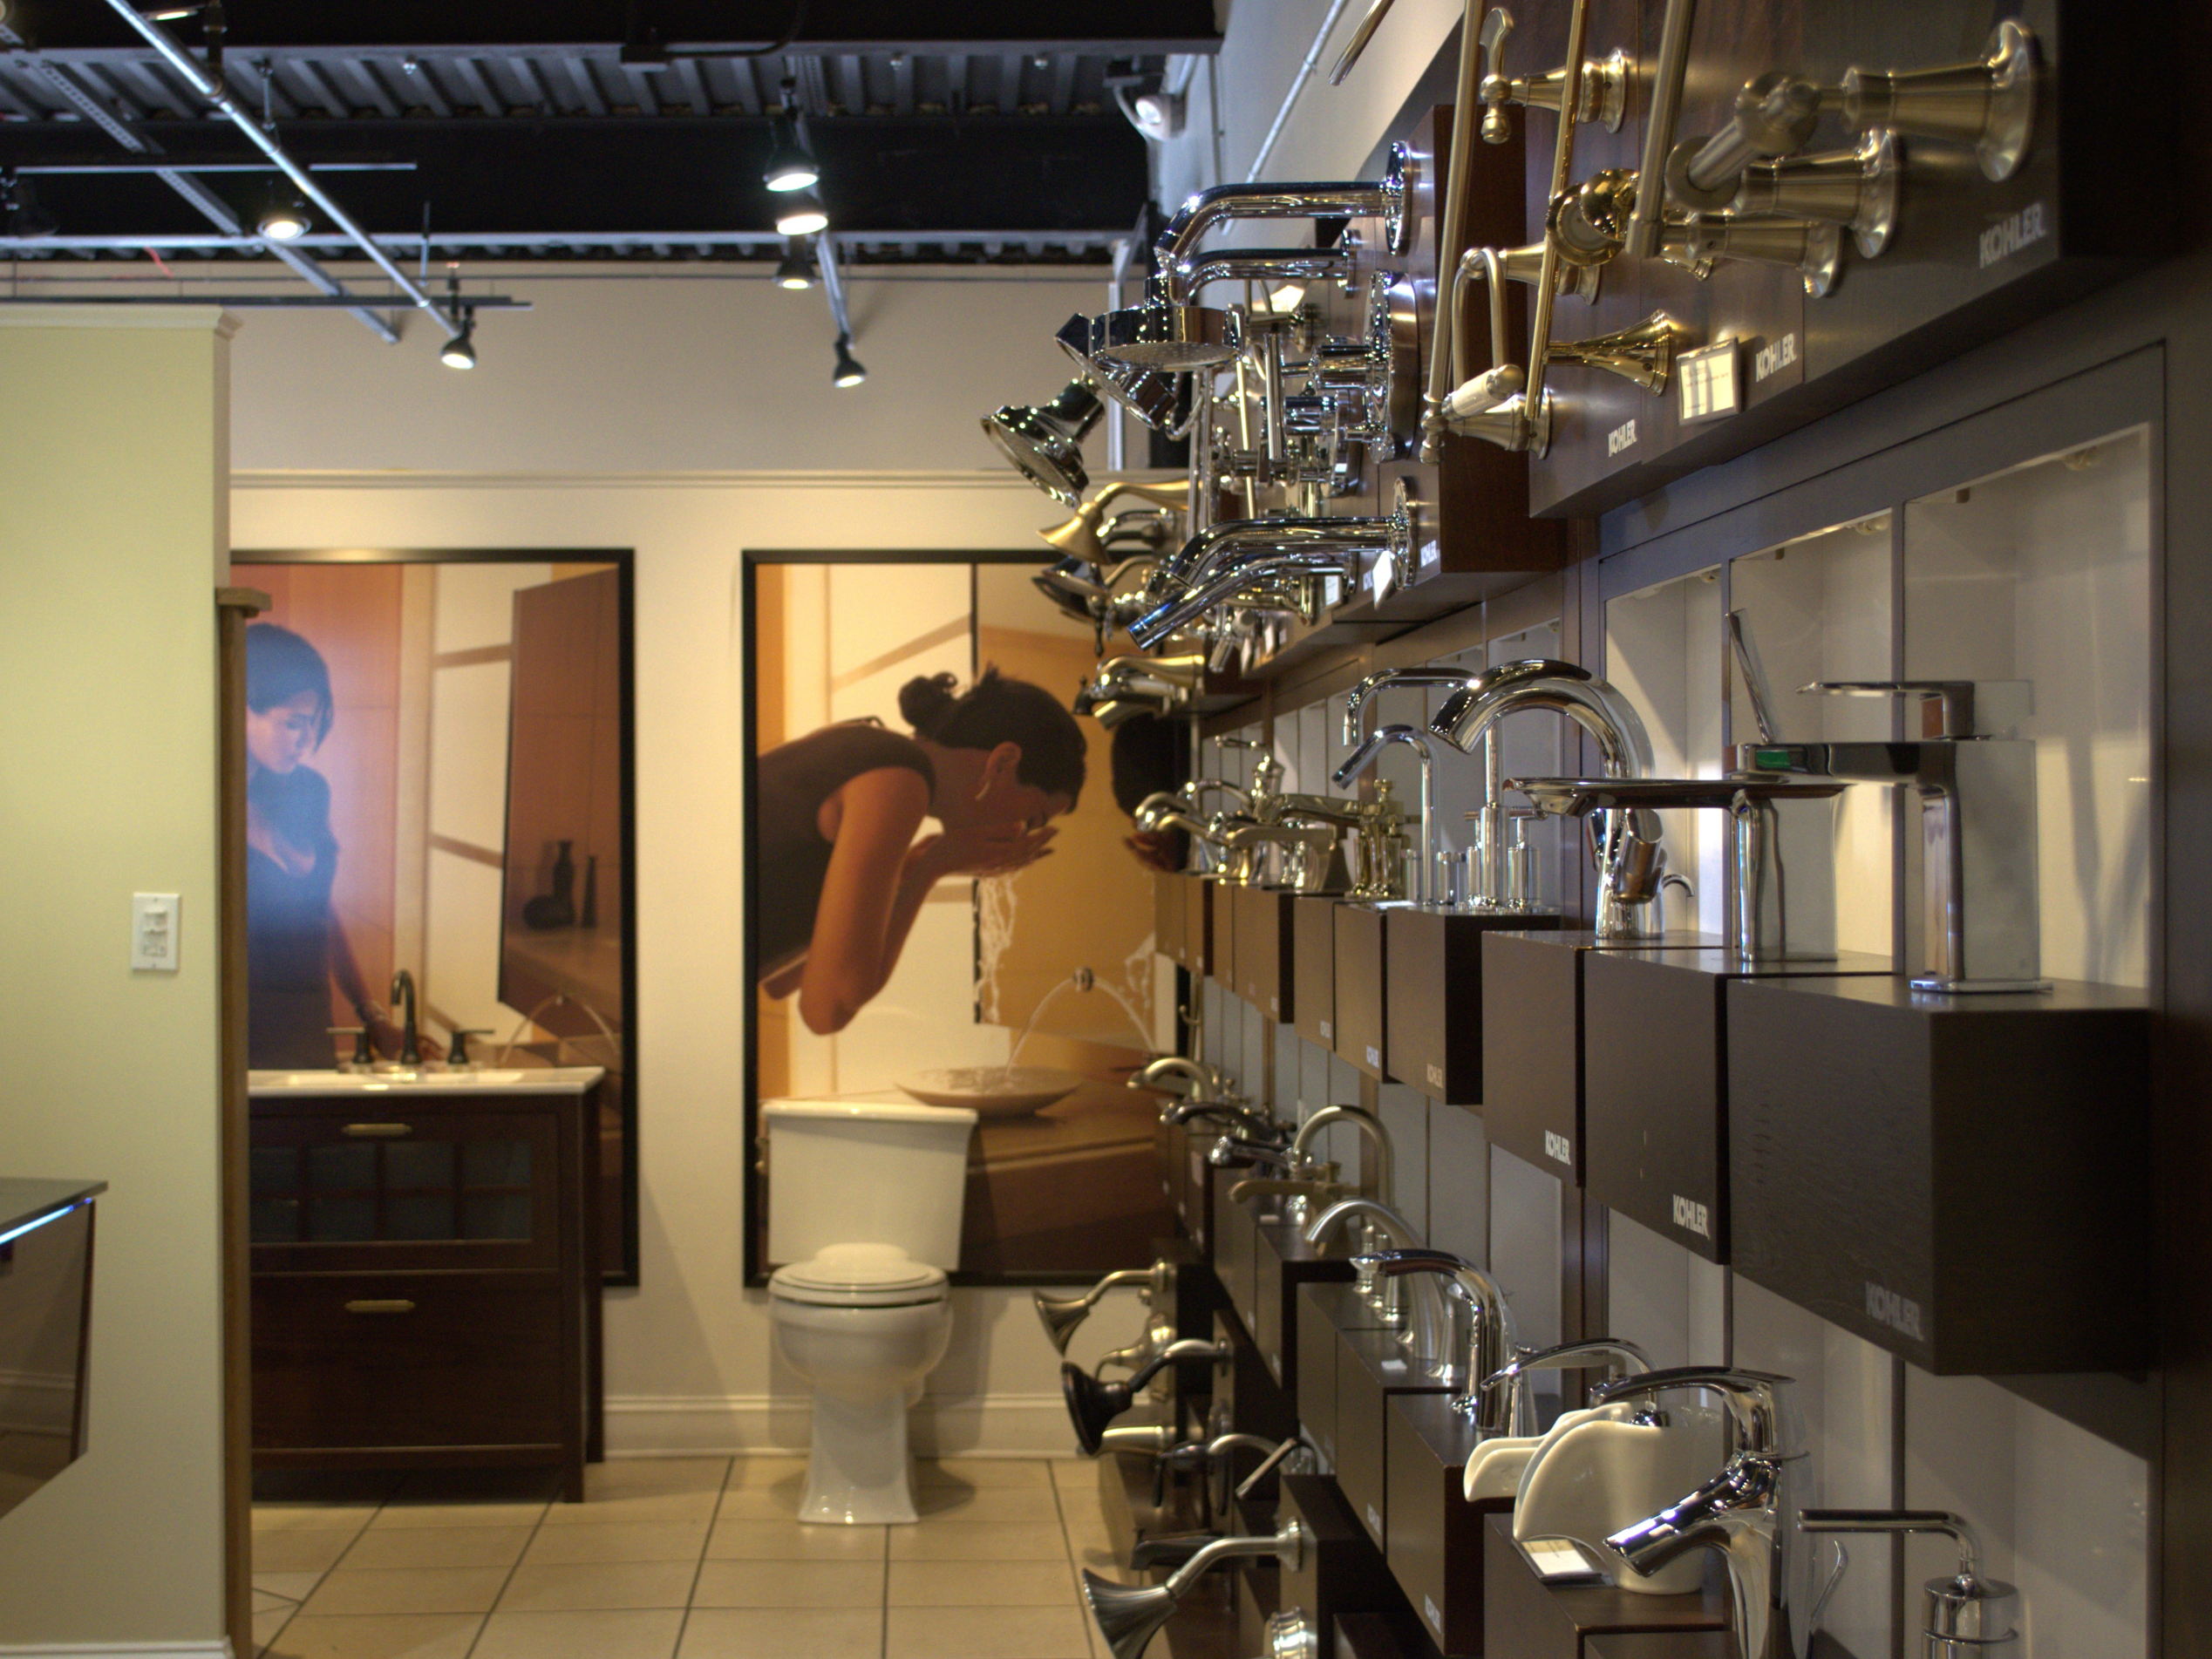 KOHLER Kitchen & Bathroom Products at Green Art Plumbing Supply ...